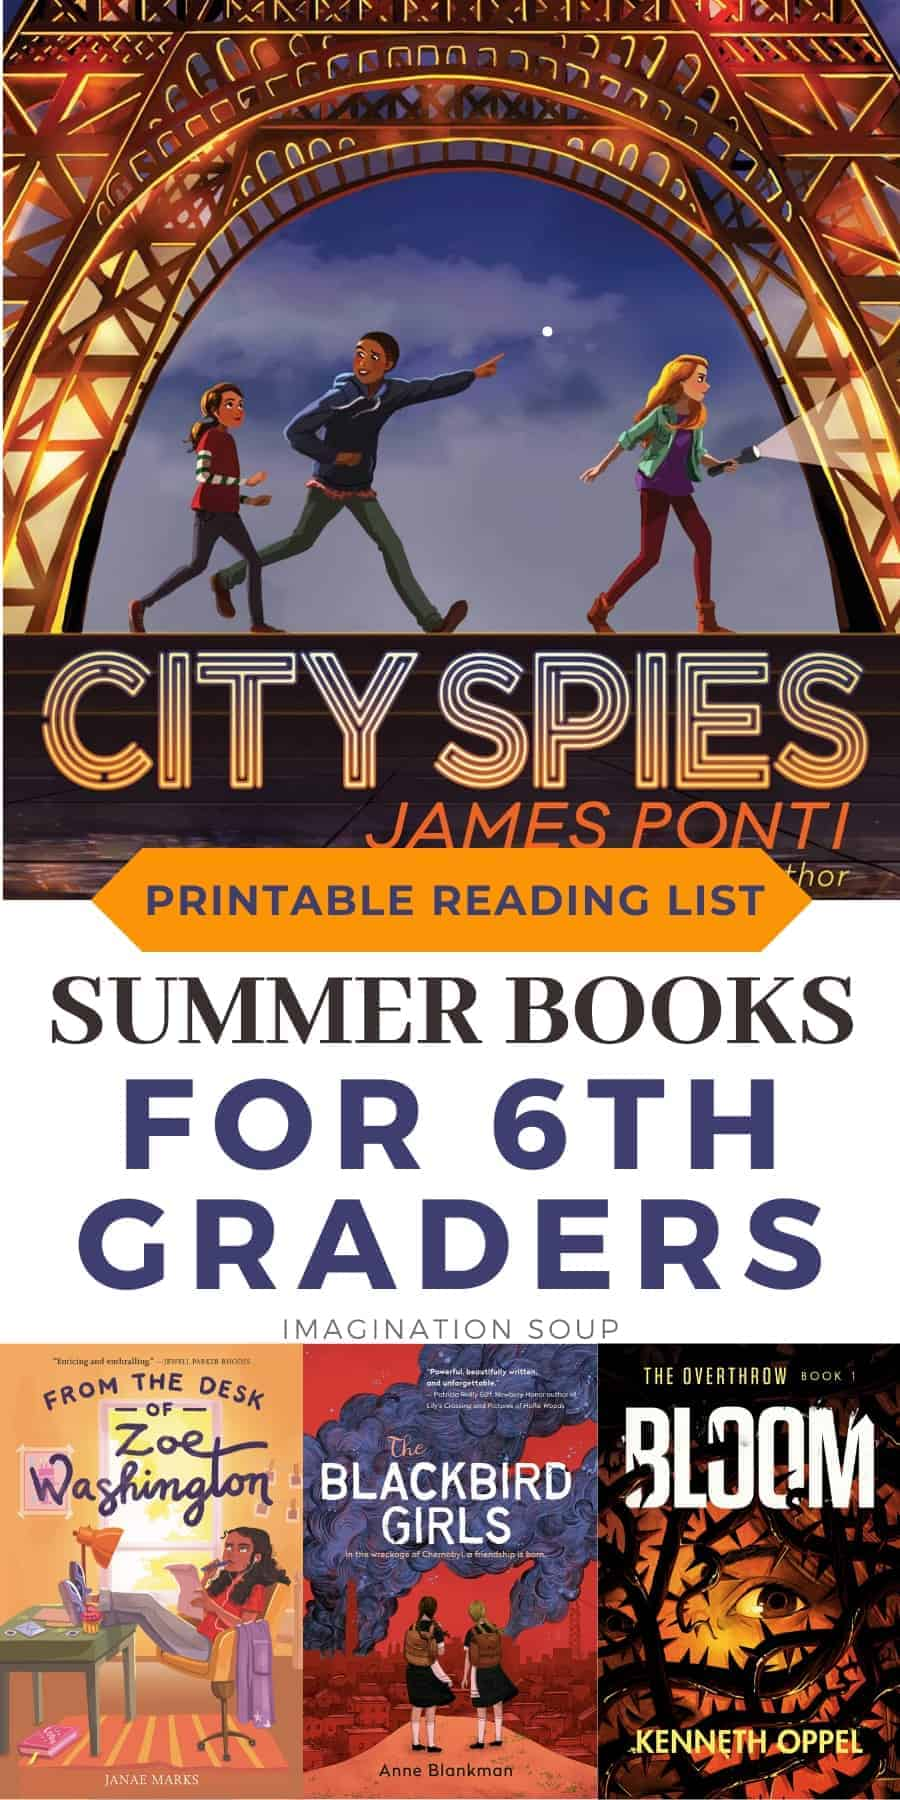 summer reading ideas for 6th graders ages 11 and 12